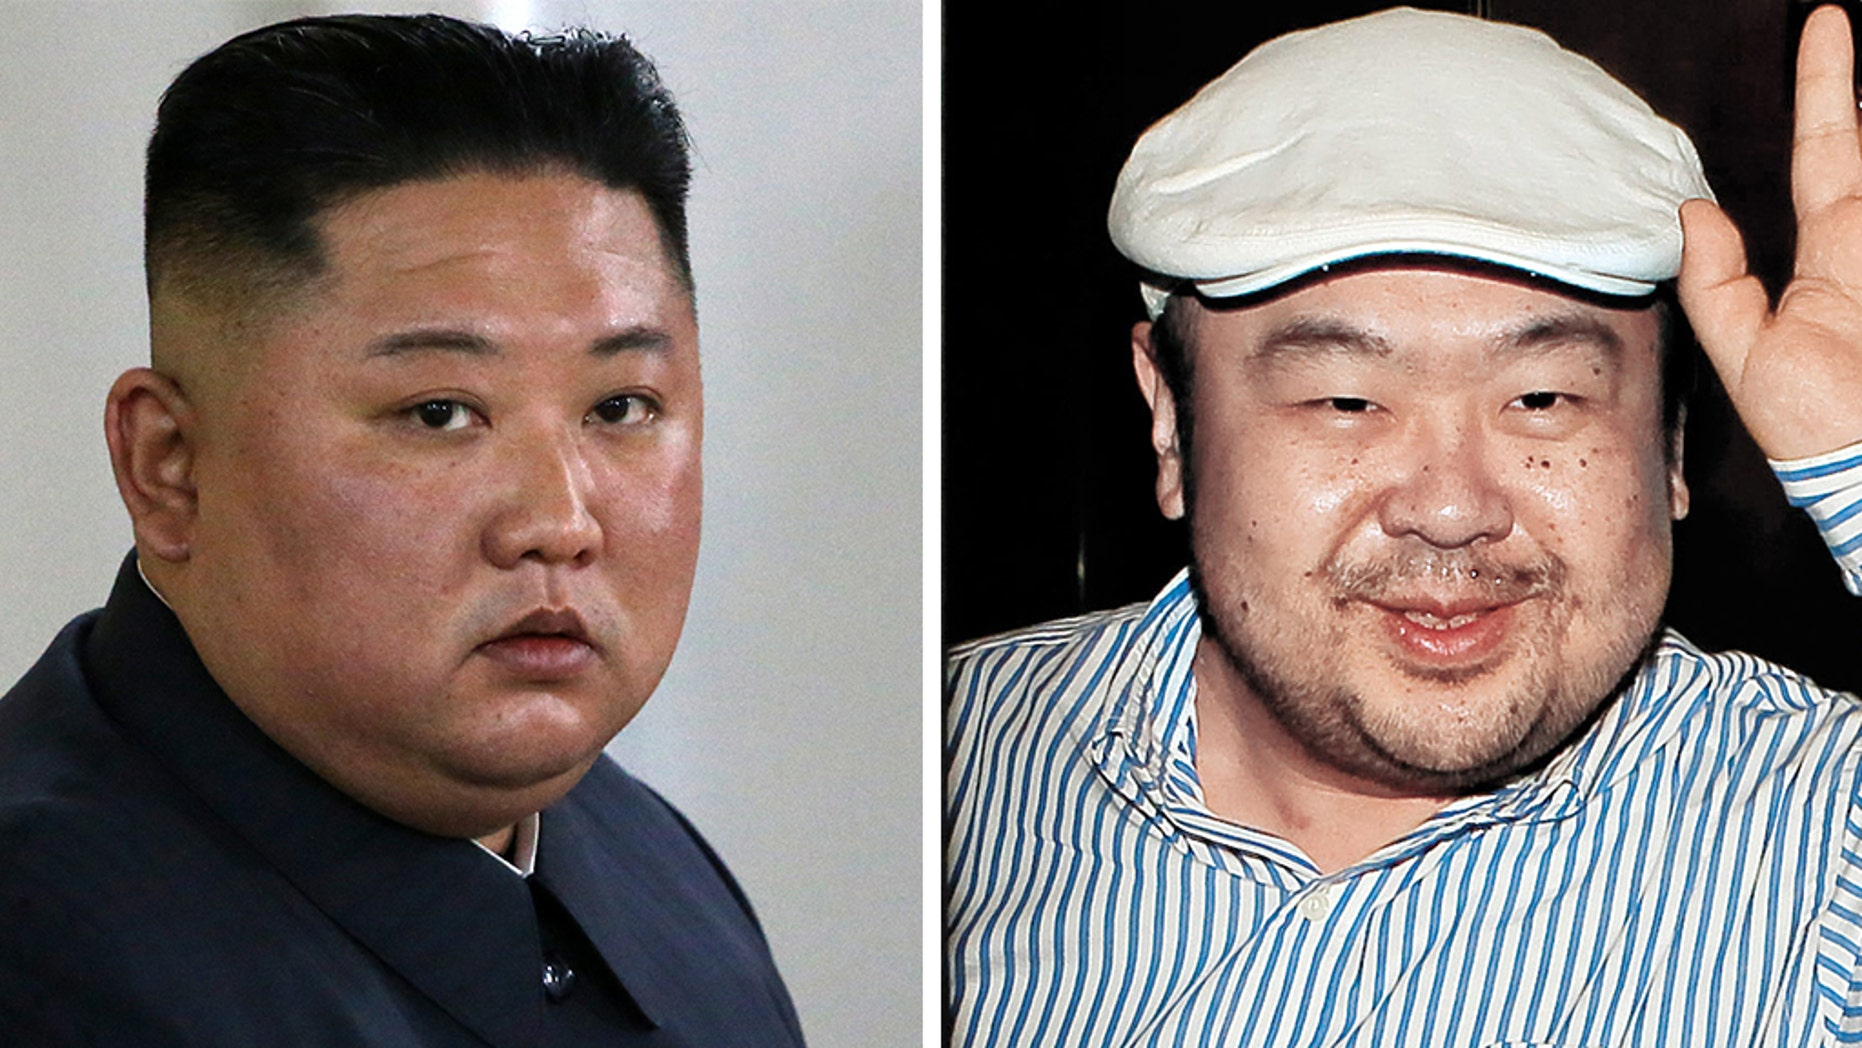 Assassinated brother of Kim was 'CIA informer'